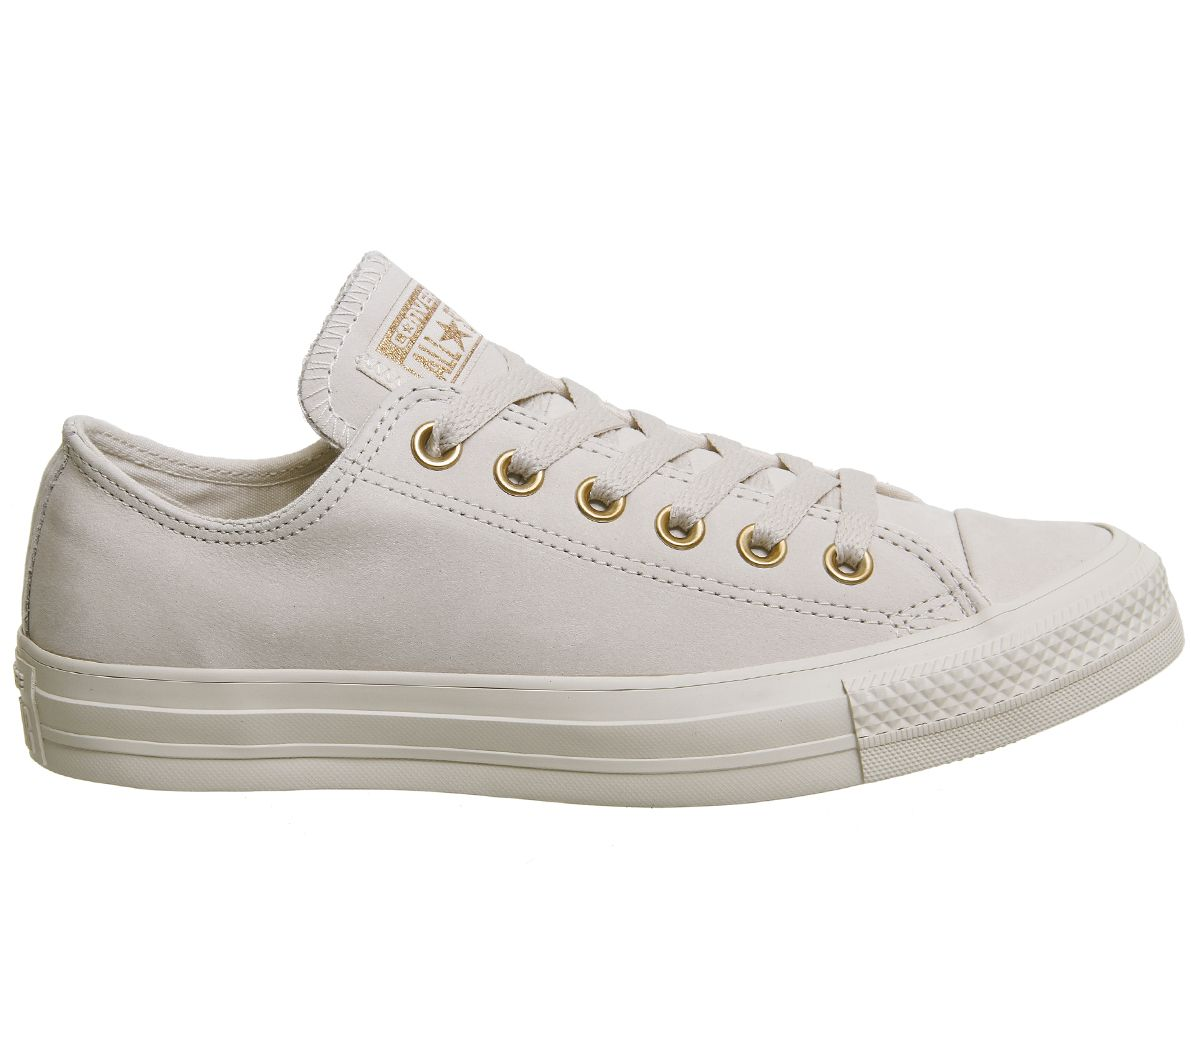 b024ba1dbaad Converse All Star Low Leather Whisper Pink Rose Gold - Hers trainers